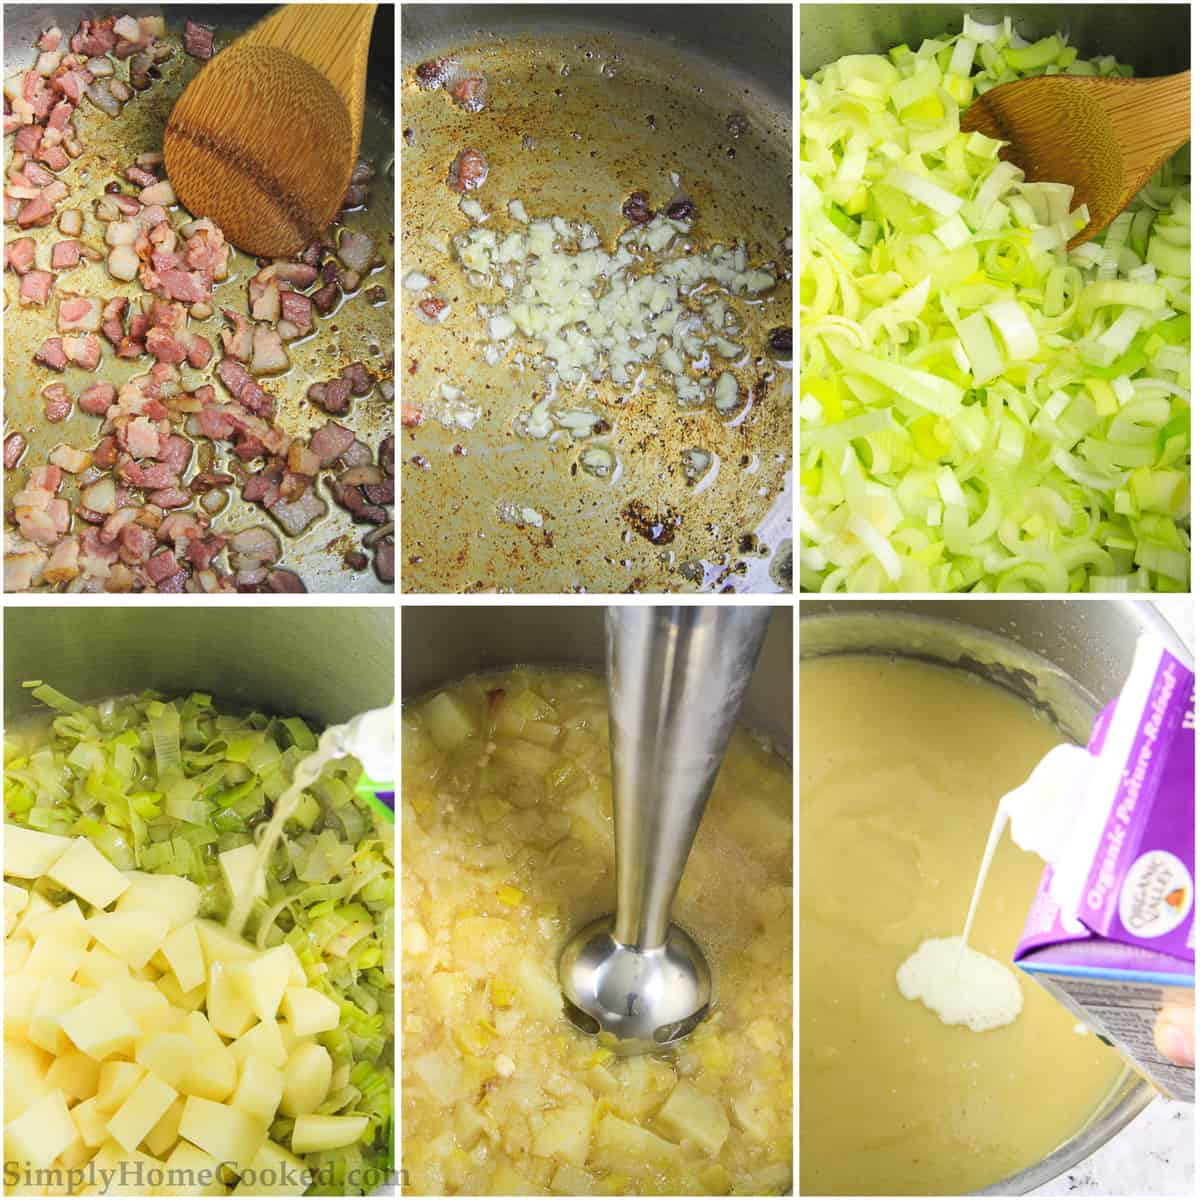 Photo step by step tutorial on cooking the bacon, garlic, and leeks prior to adding in the potatoes and broth to create this creamy potato soup recipe